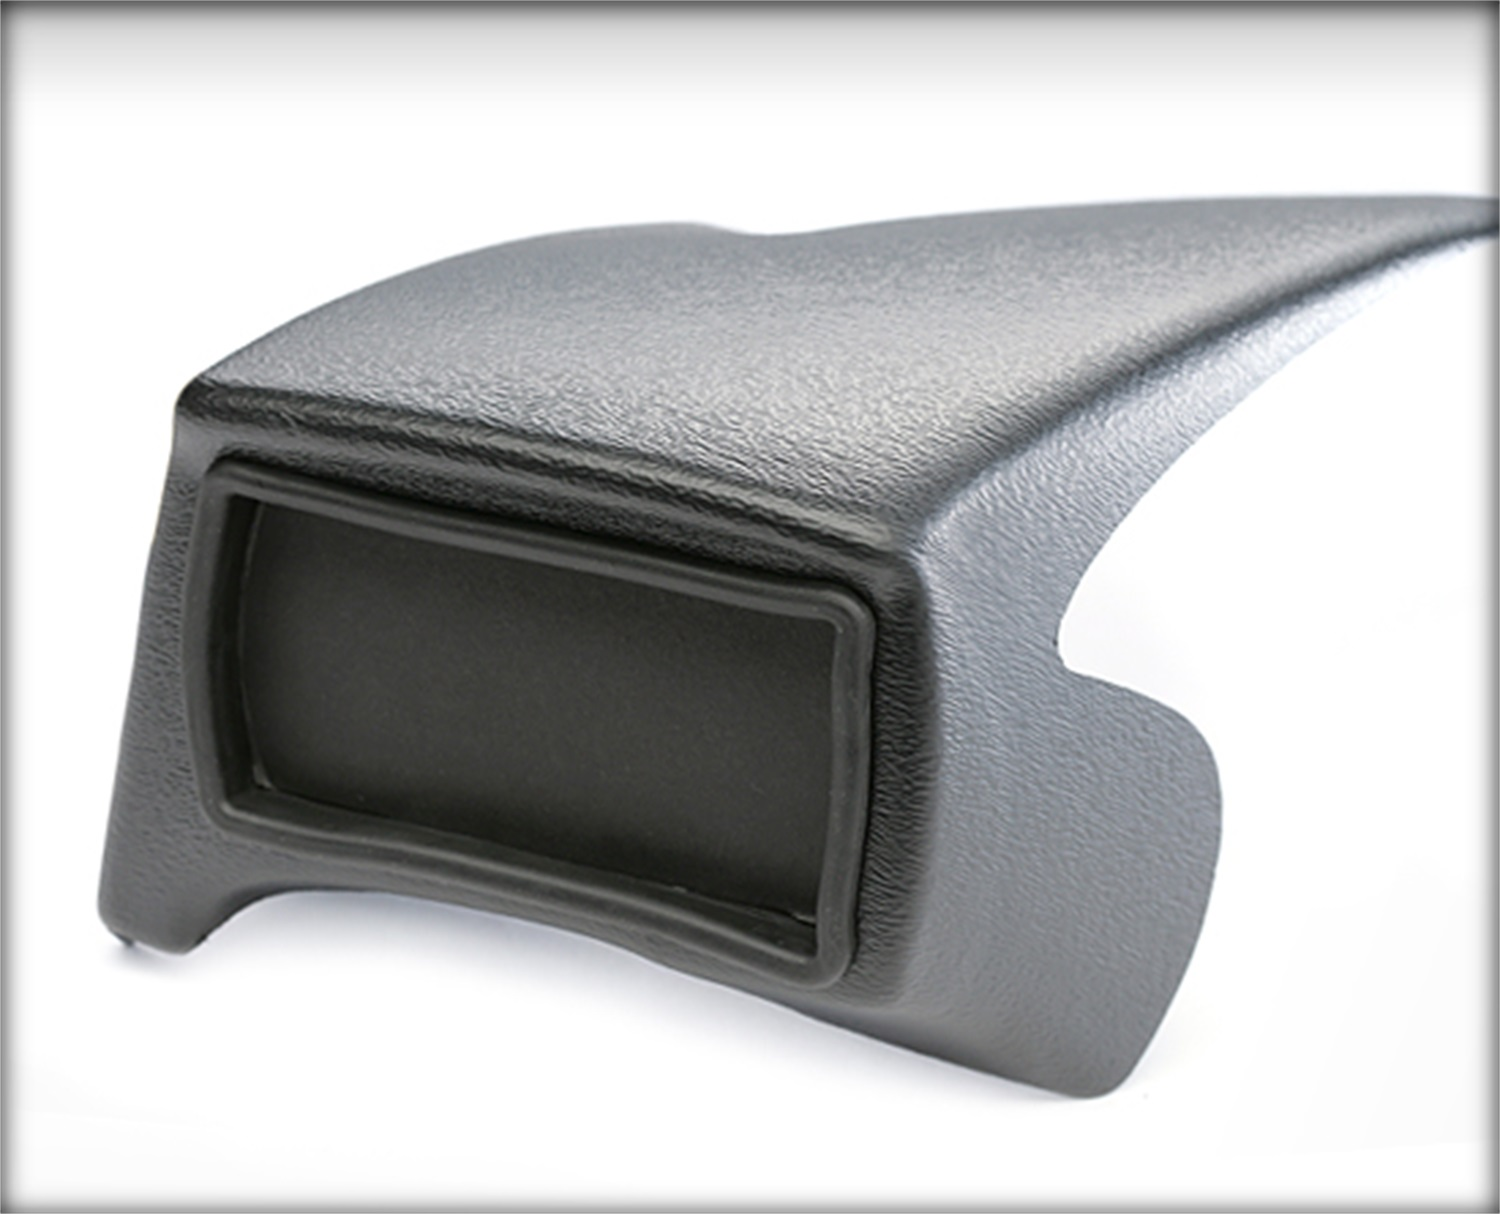 Edge Products 18550 1997-2003 FORD F-150 4.6L/5.4L GAS DASH POD (Comes with CTS and CTS2 adaptors)